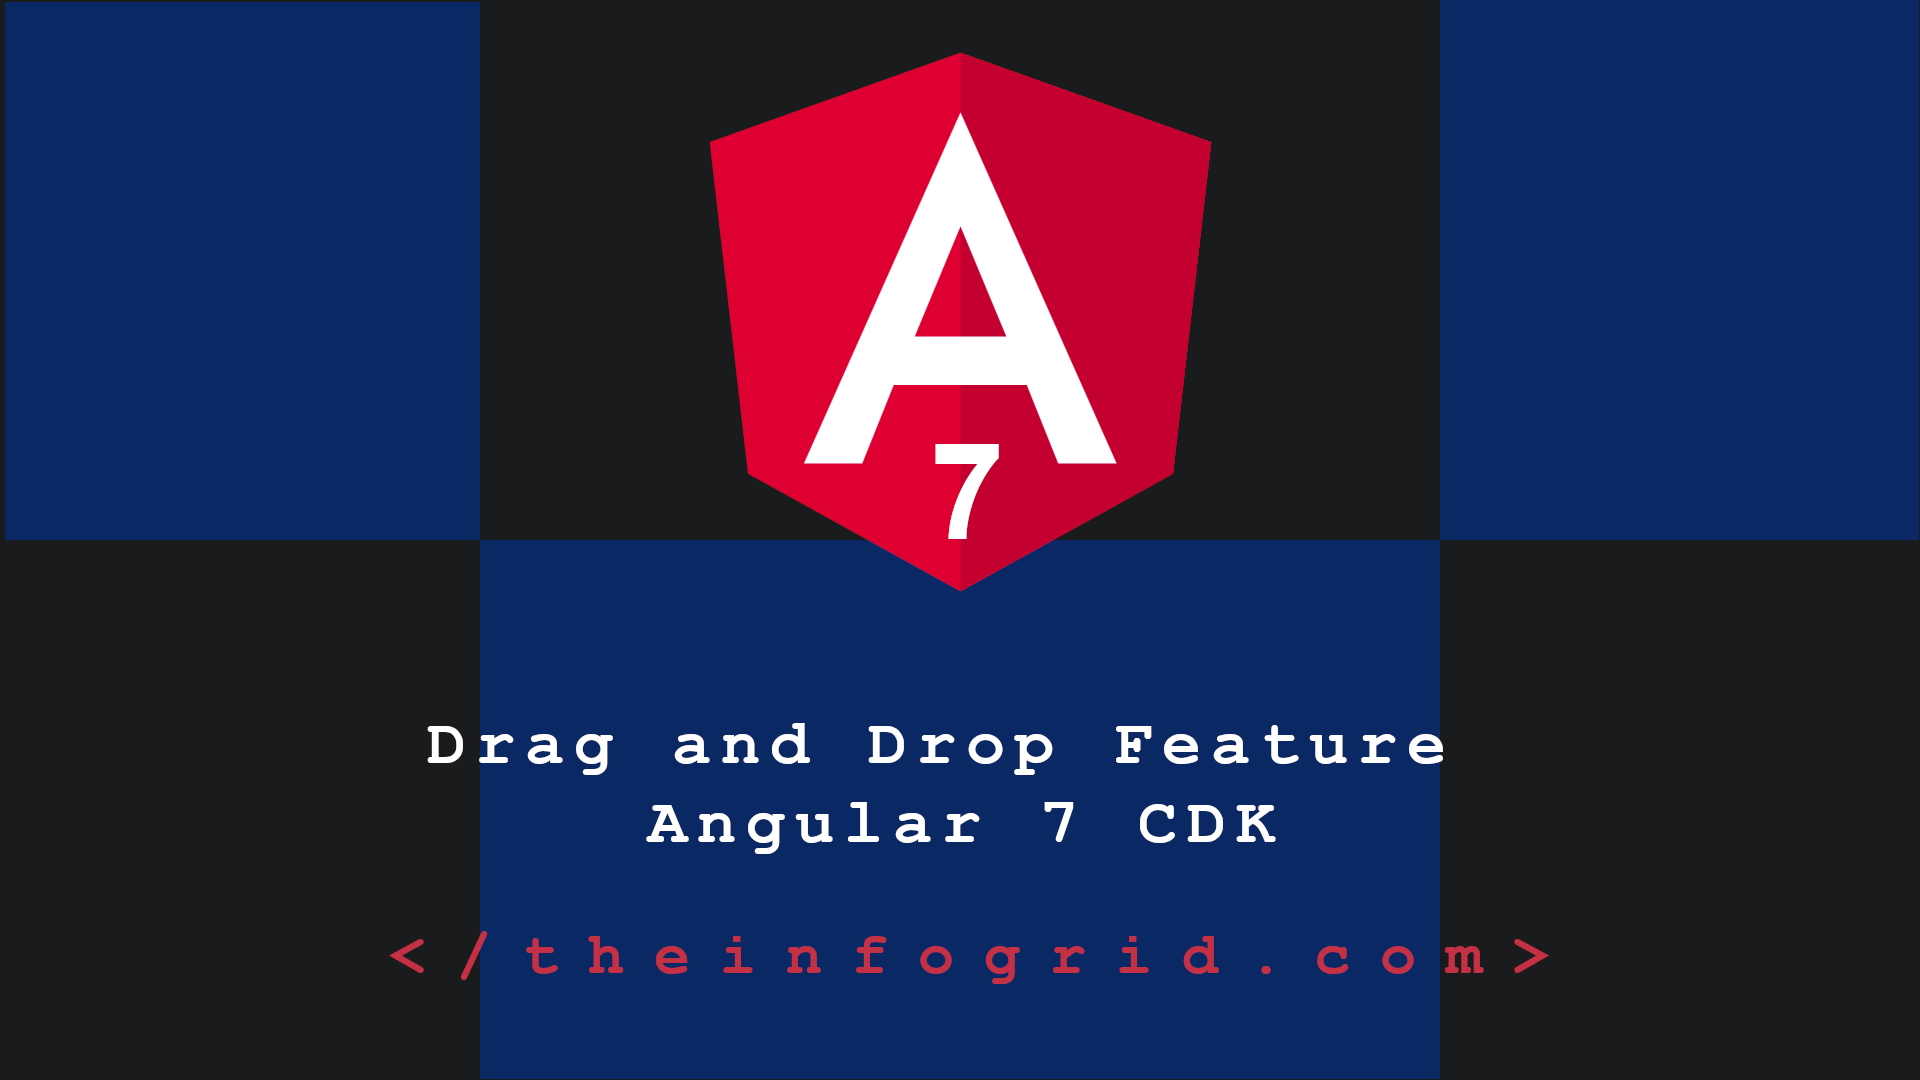 A Closer Look at the Drag and Drop Feature for Angular 7 CDK